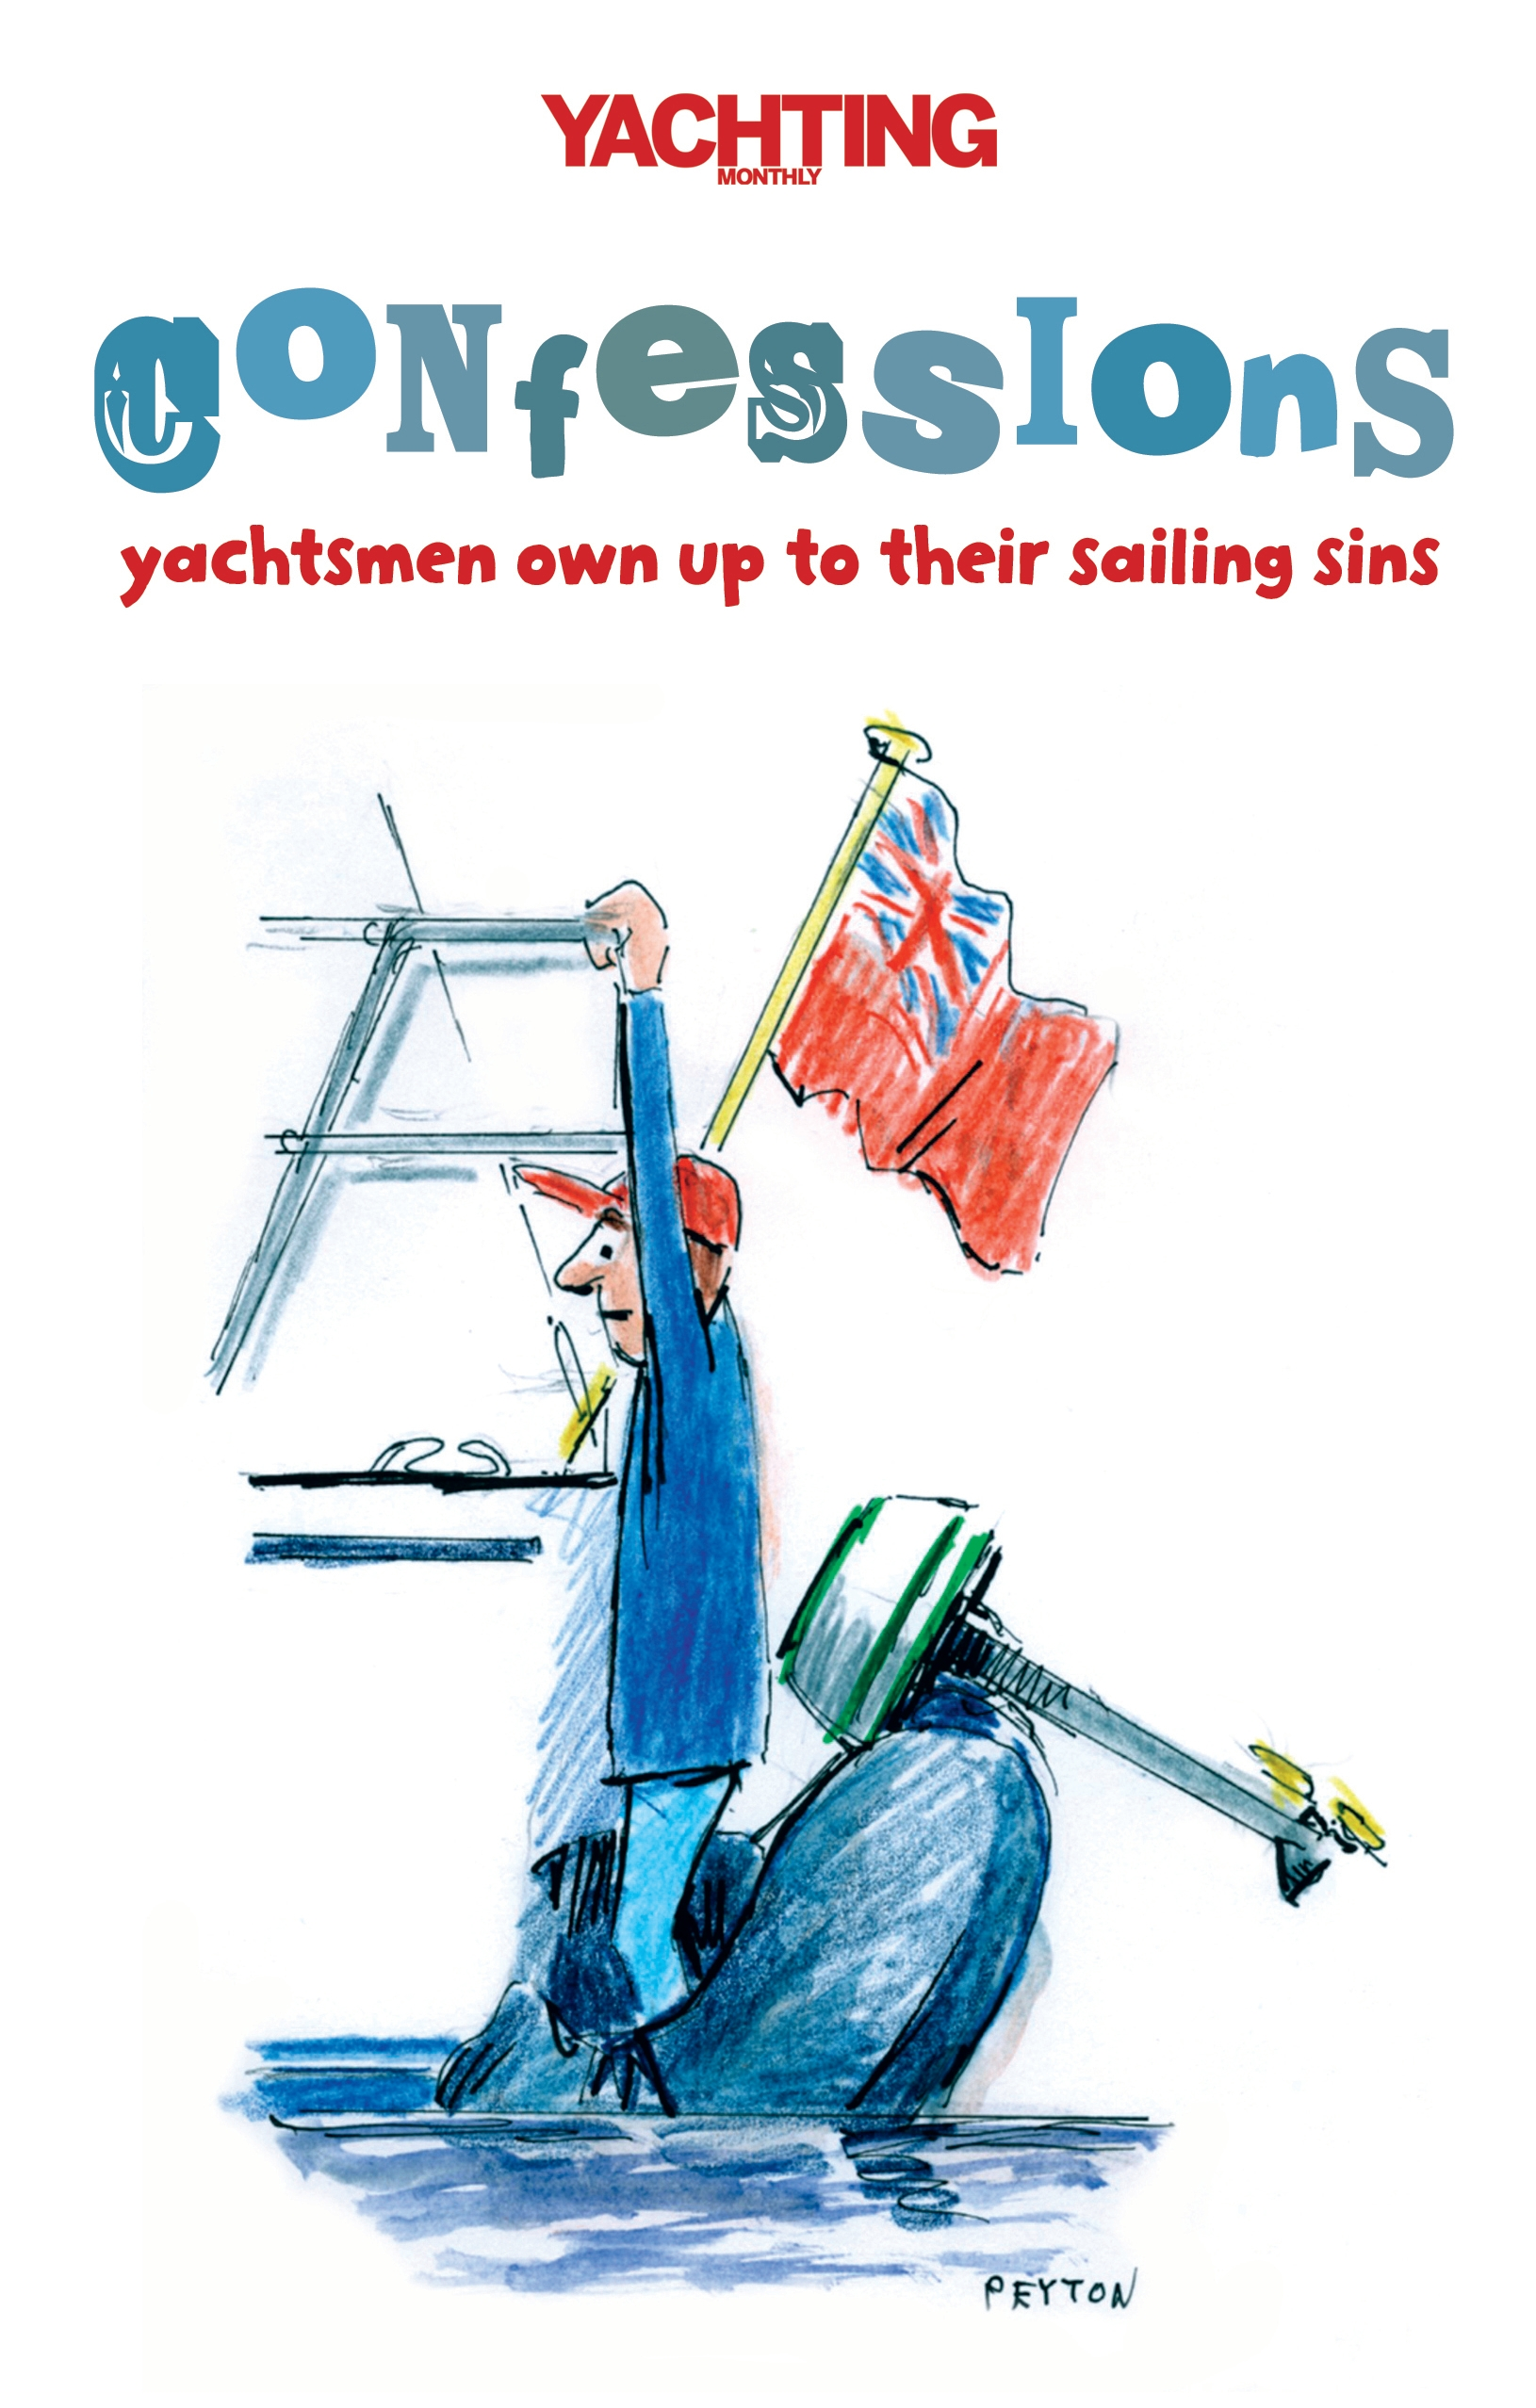 Yachting Monthly's Confessions Yachtsmen Own Up to Their Sailing Sins